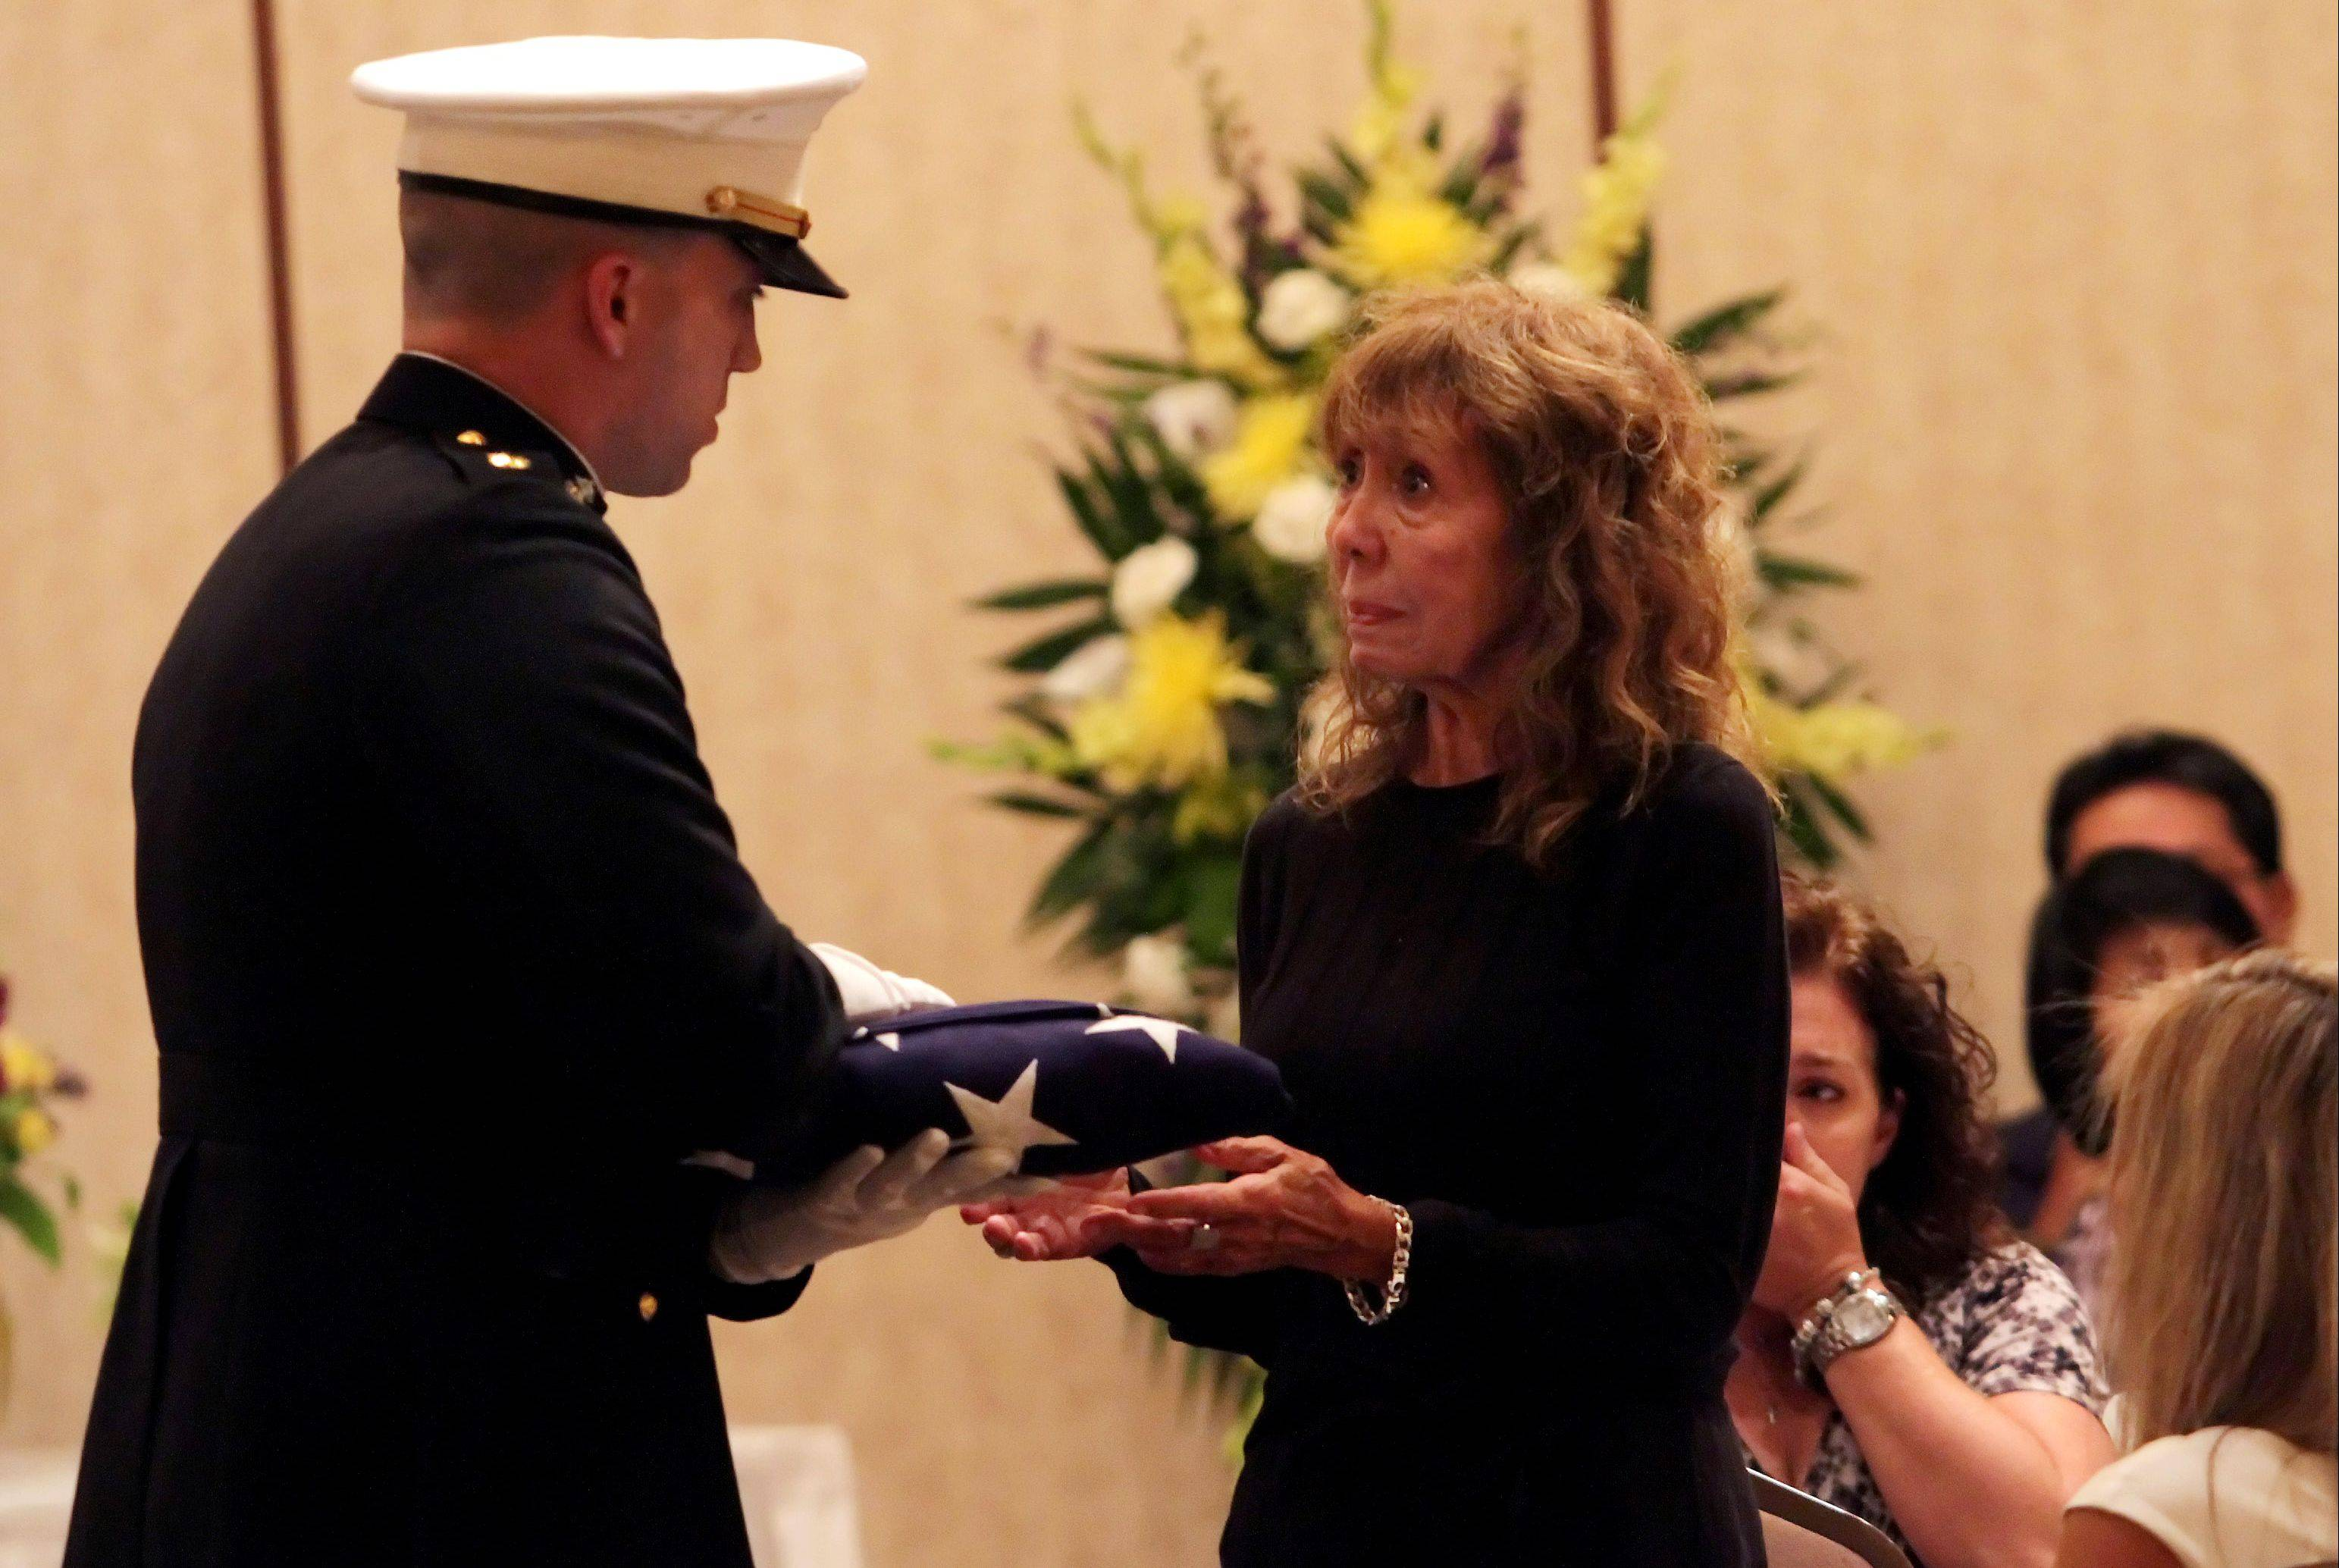 Caroll Suchy receives a flag from a member of the U.S. Marine Corps Reserve Center in Joliet during a memorial ceremony Thursday evening in Willowbrook for her son Randy Suchy, 59, of Naperville. He died Friday while helping to save a 12-year-old boy from drowning.